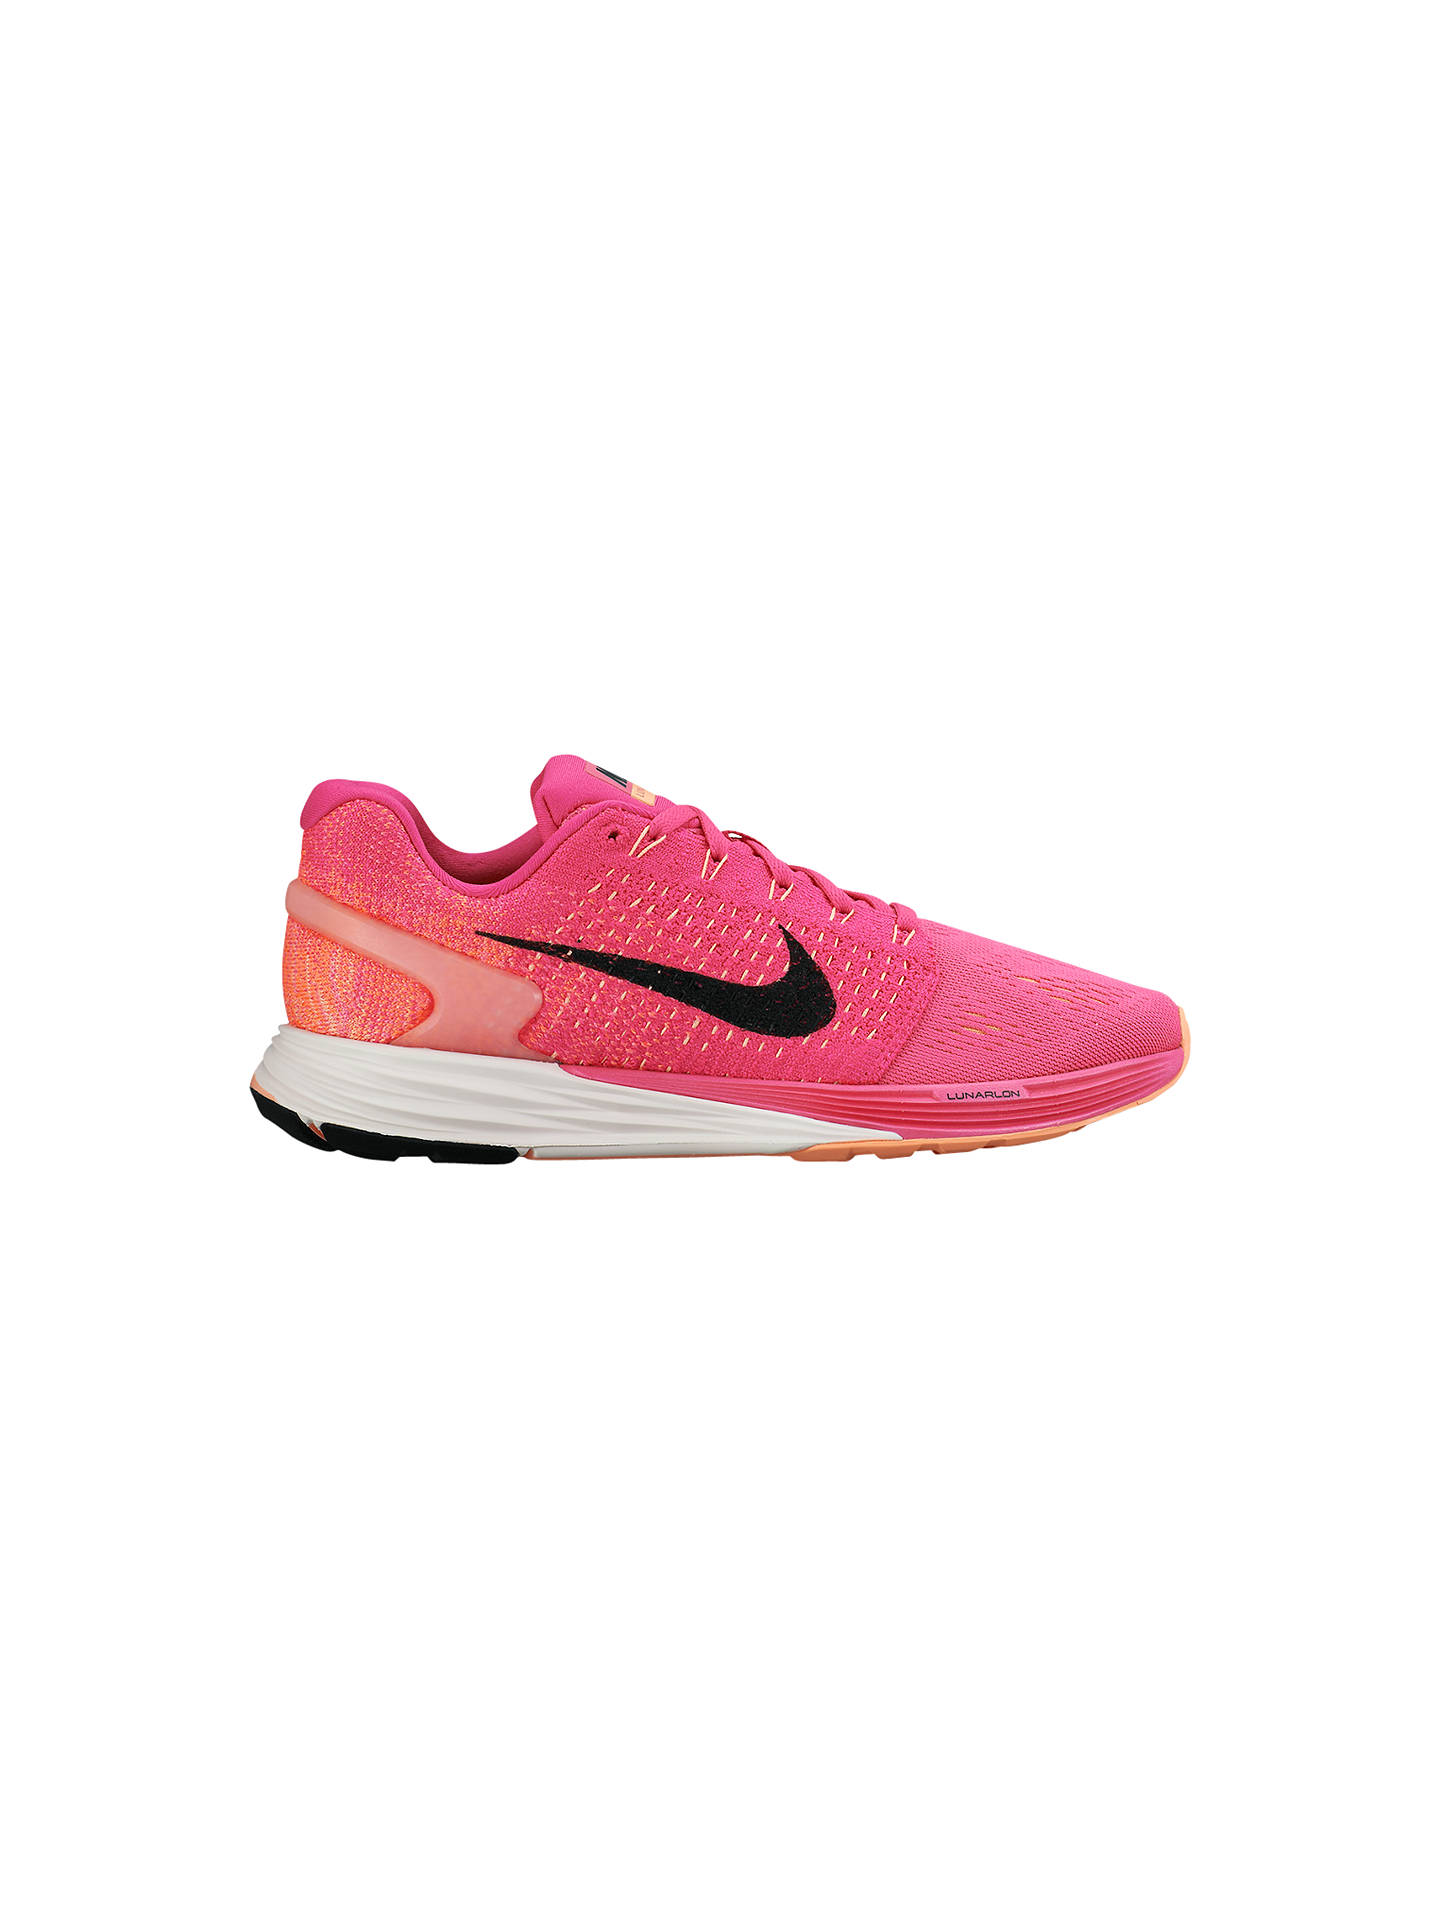 on sale 655bd dd2cb discount nike lunarglide 7 black pink 747356 005 d1b25 bb7dc  get buynike lunarglide  7 womens running shoes pink 4 online at johnlewis. 5238d 5a8dd